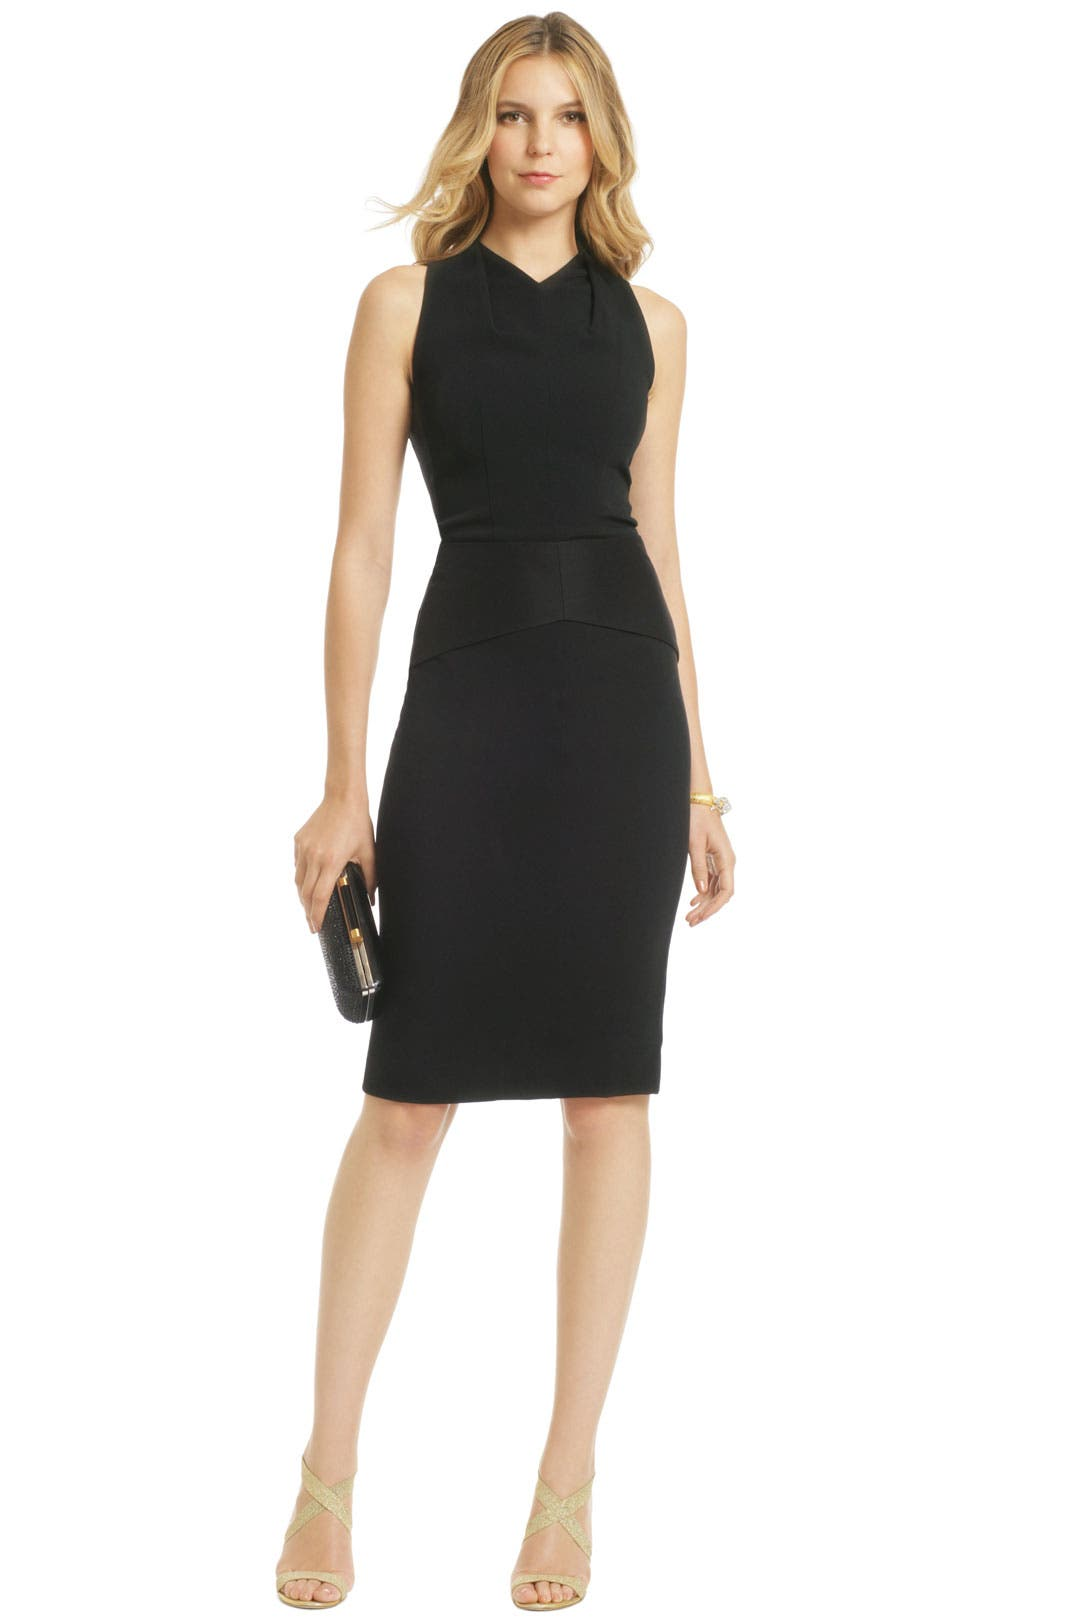 Woman in Charge Dress by Narciso Rodriguez